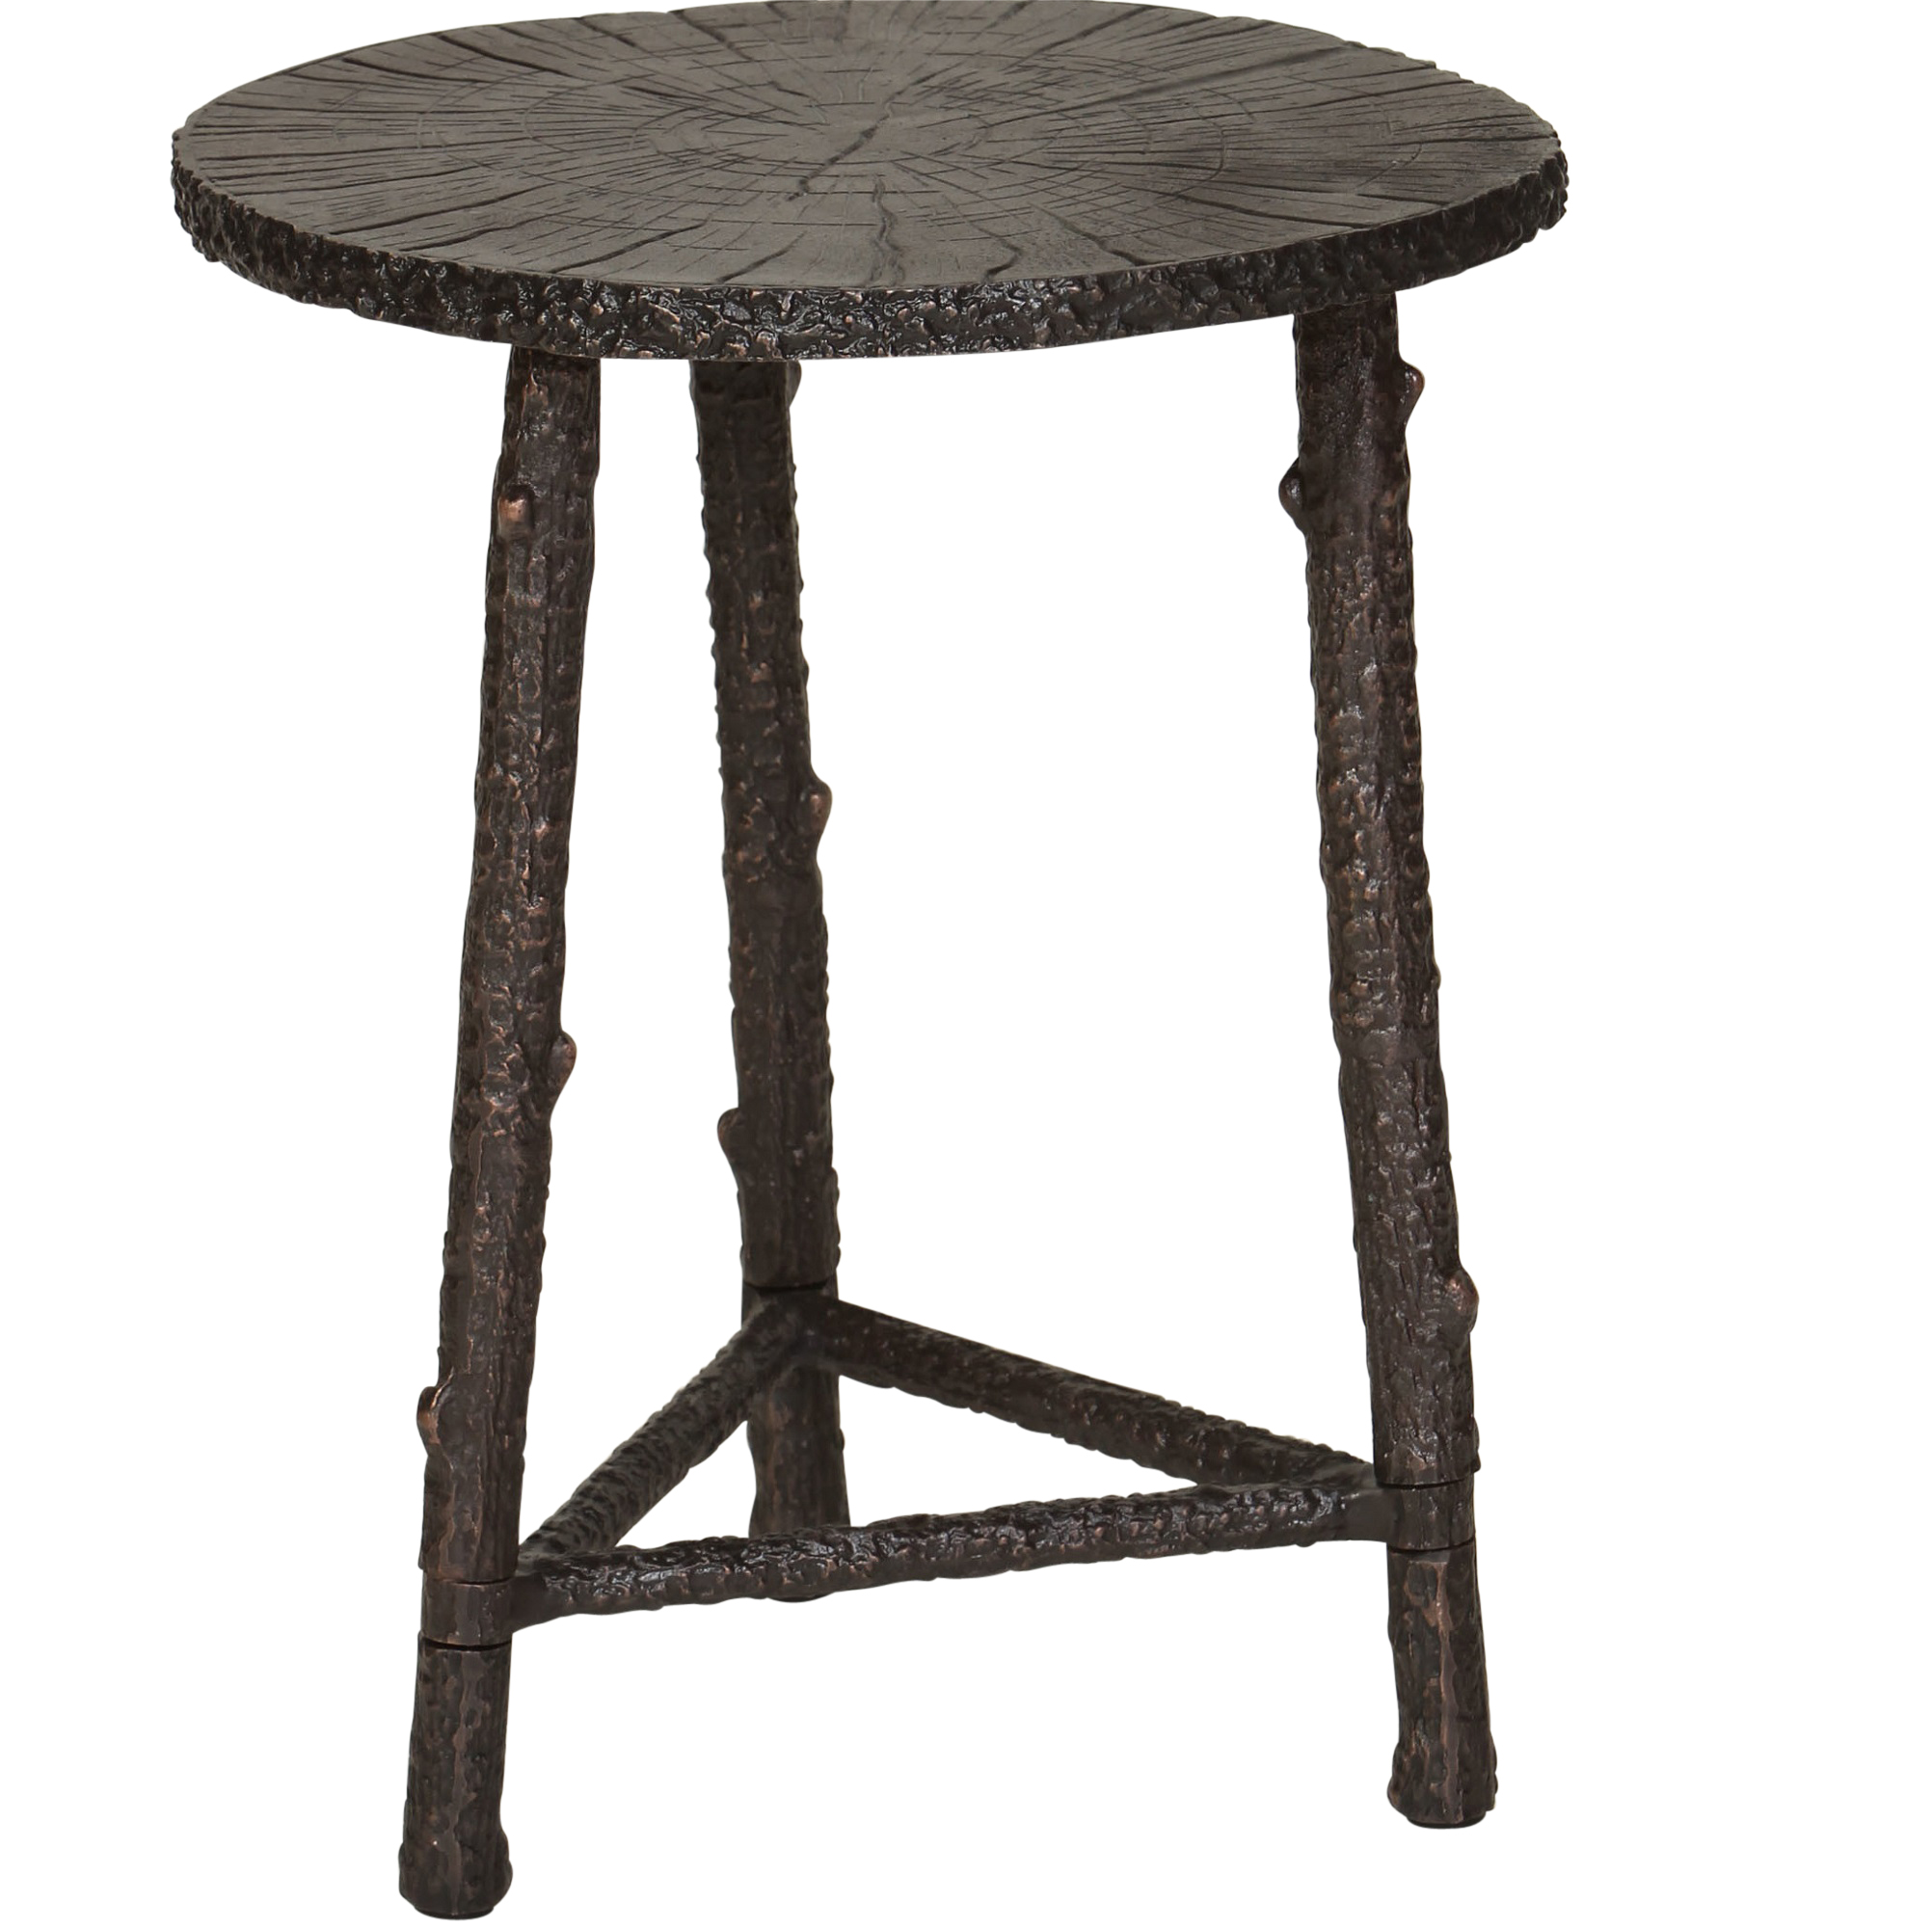 arrie bazaar antique bronze round iron end table kathy accent aluminum cabana home wooden plant stand bathroom tray tall grey lamps dark wood decoration ideas lucite dining chairs